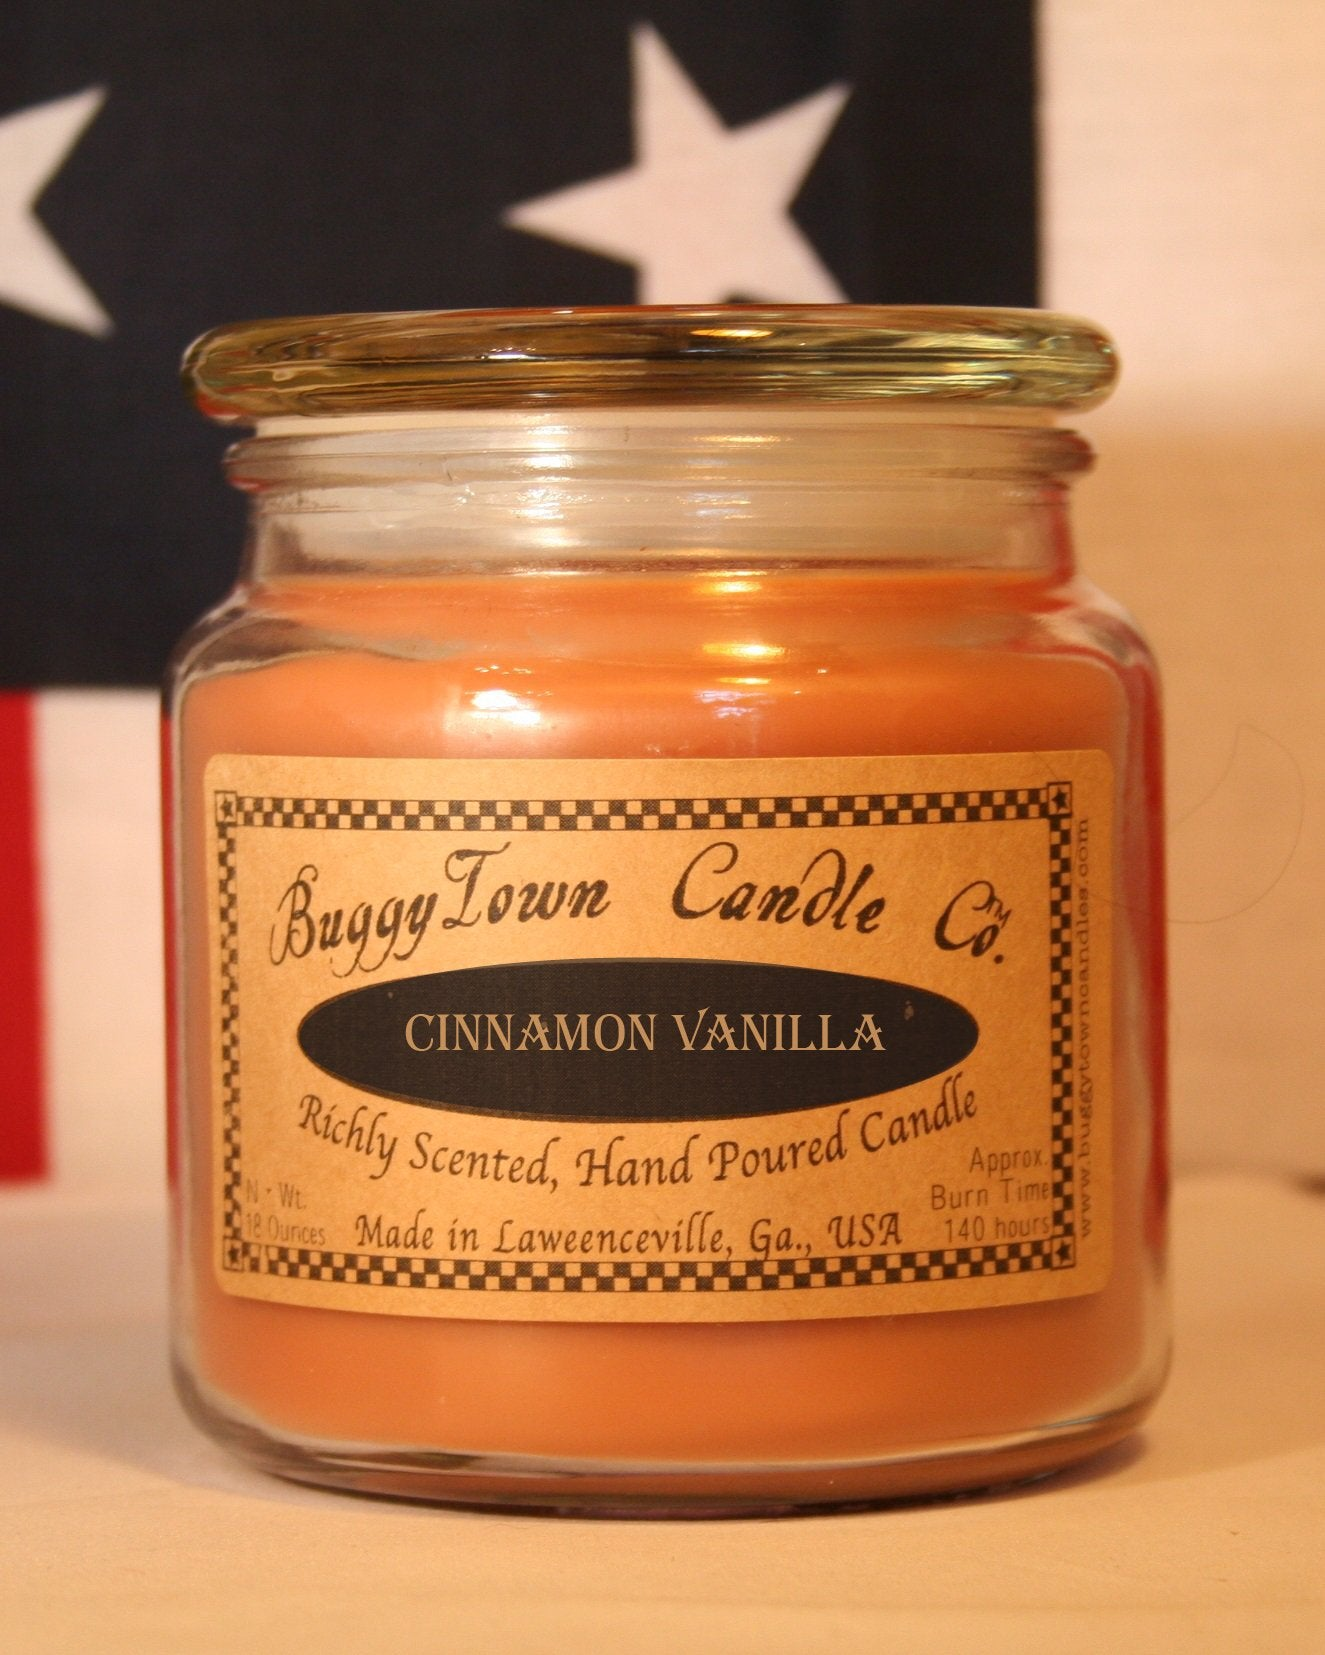 Cinnamon Vanilla Candles